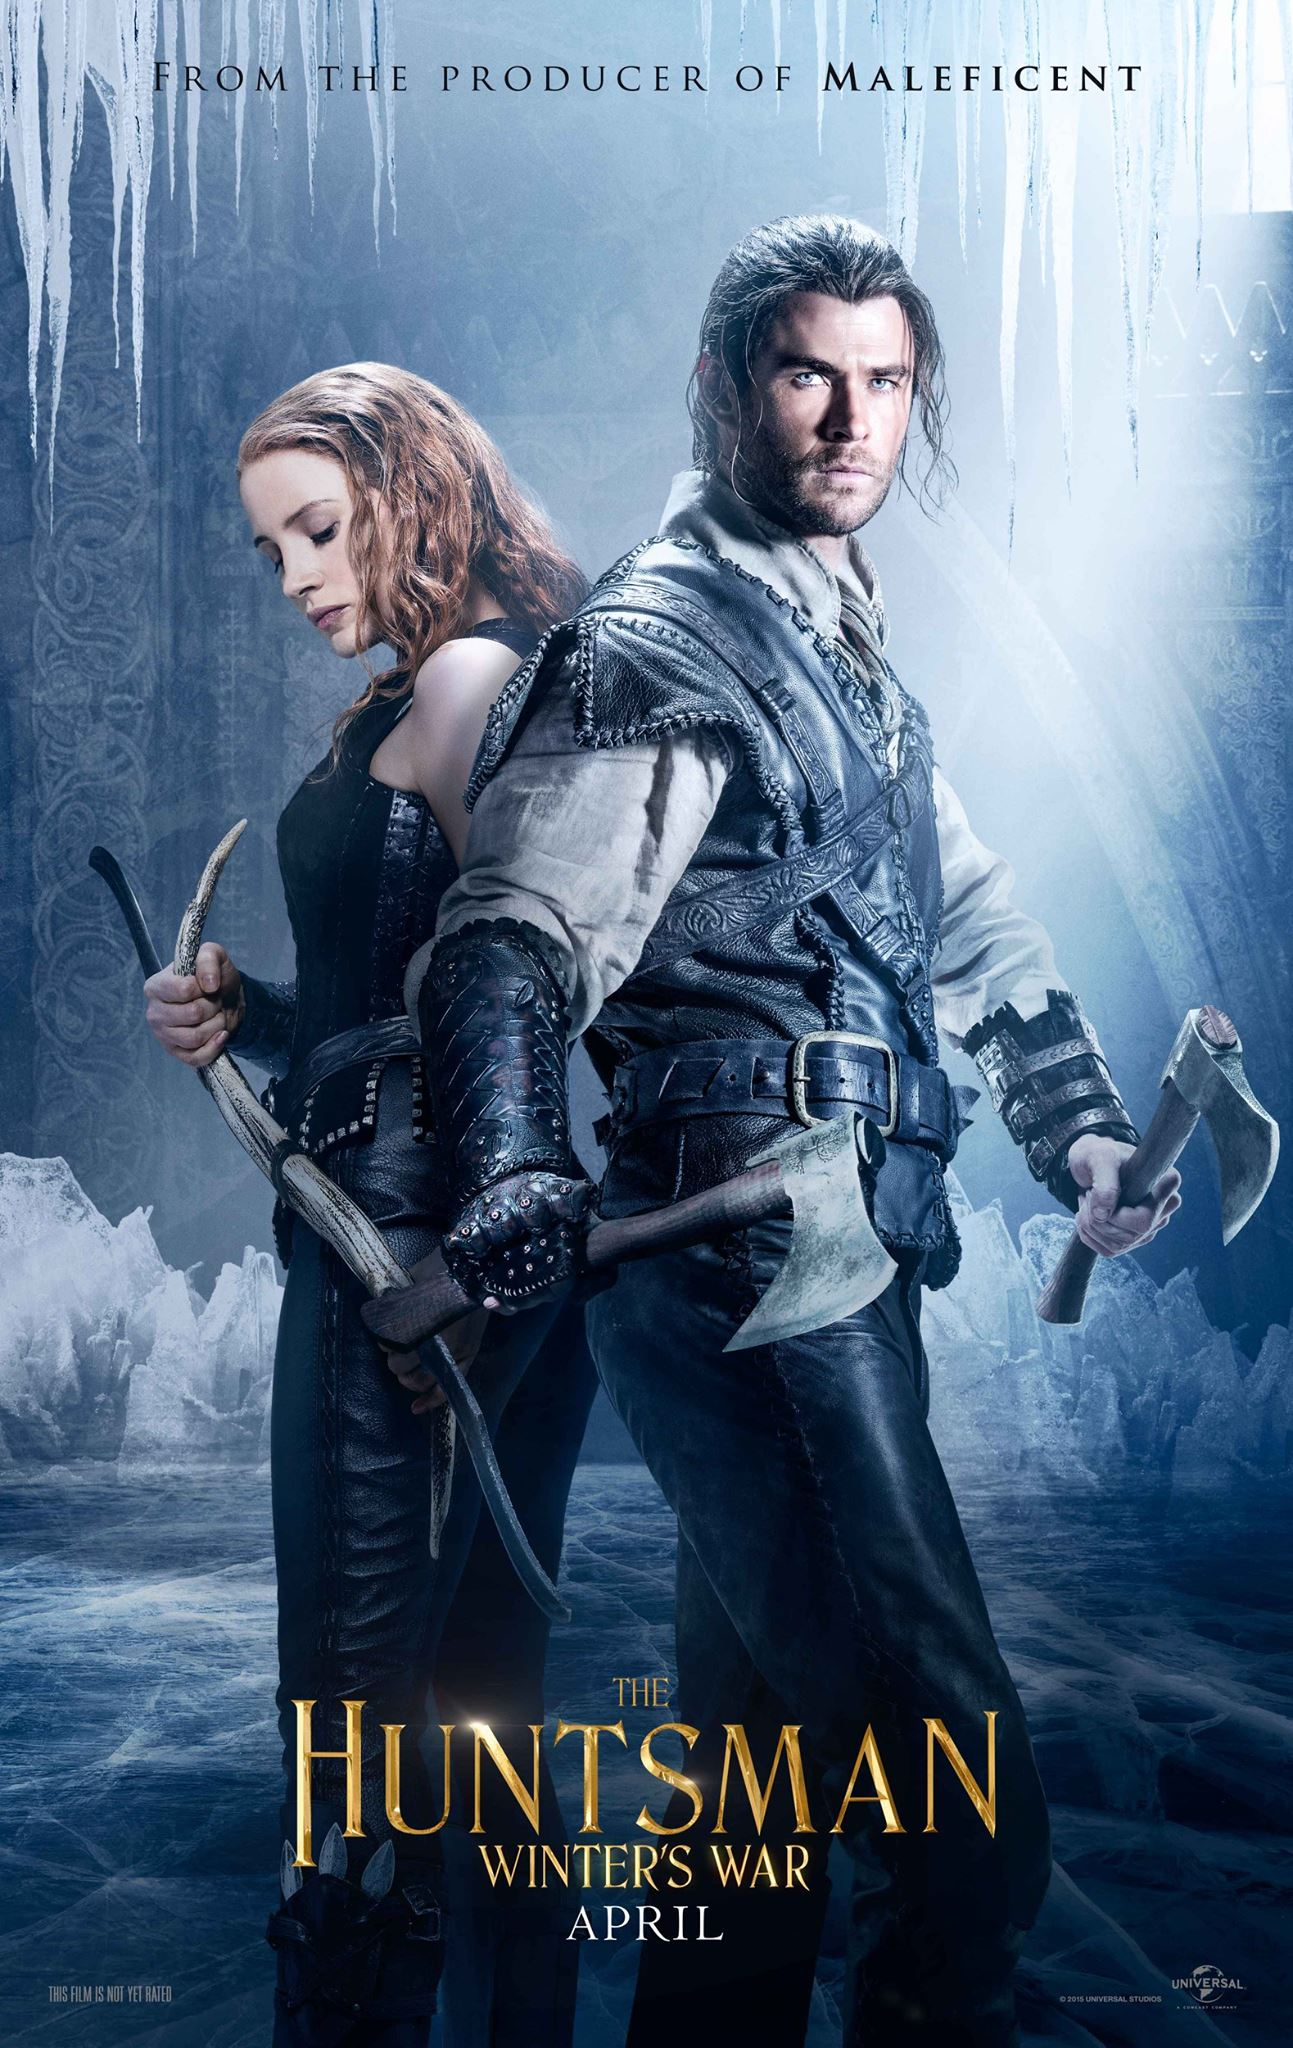 El cazador y la reina del hielo (The Huntsman: Winter's War)